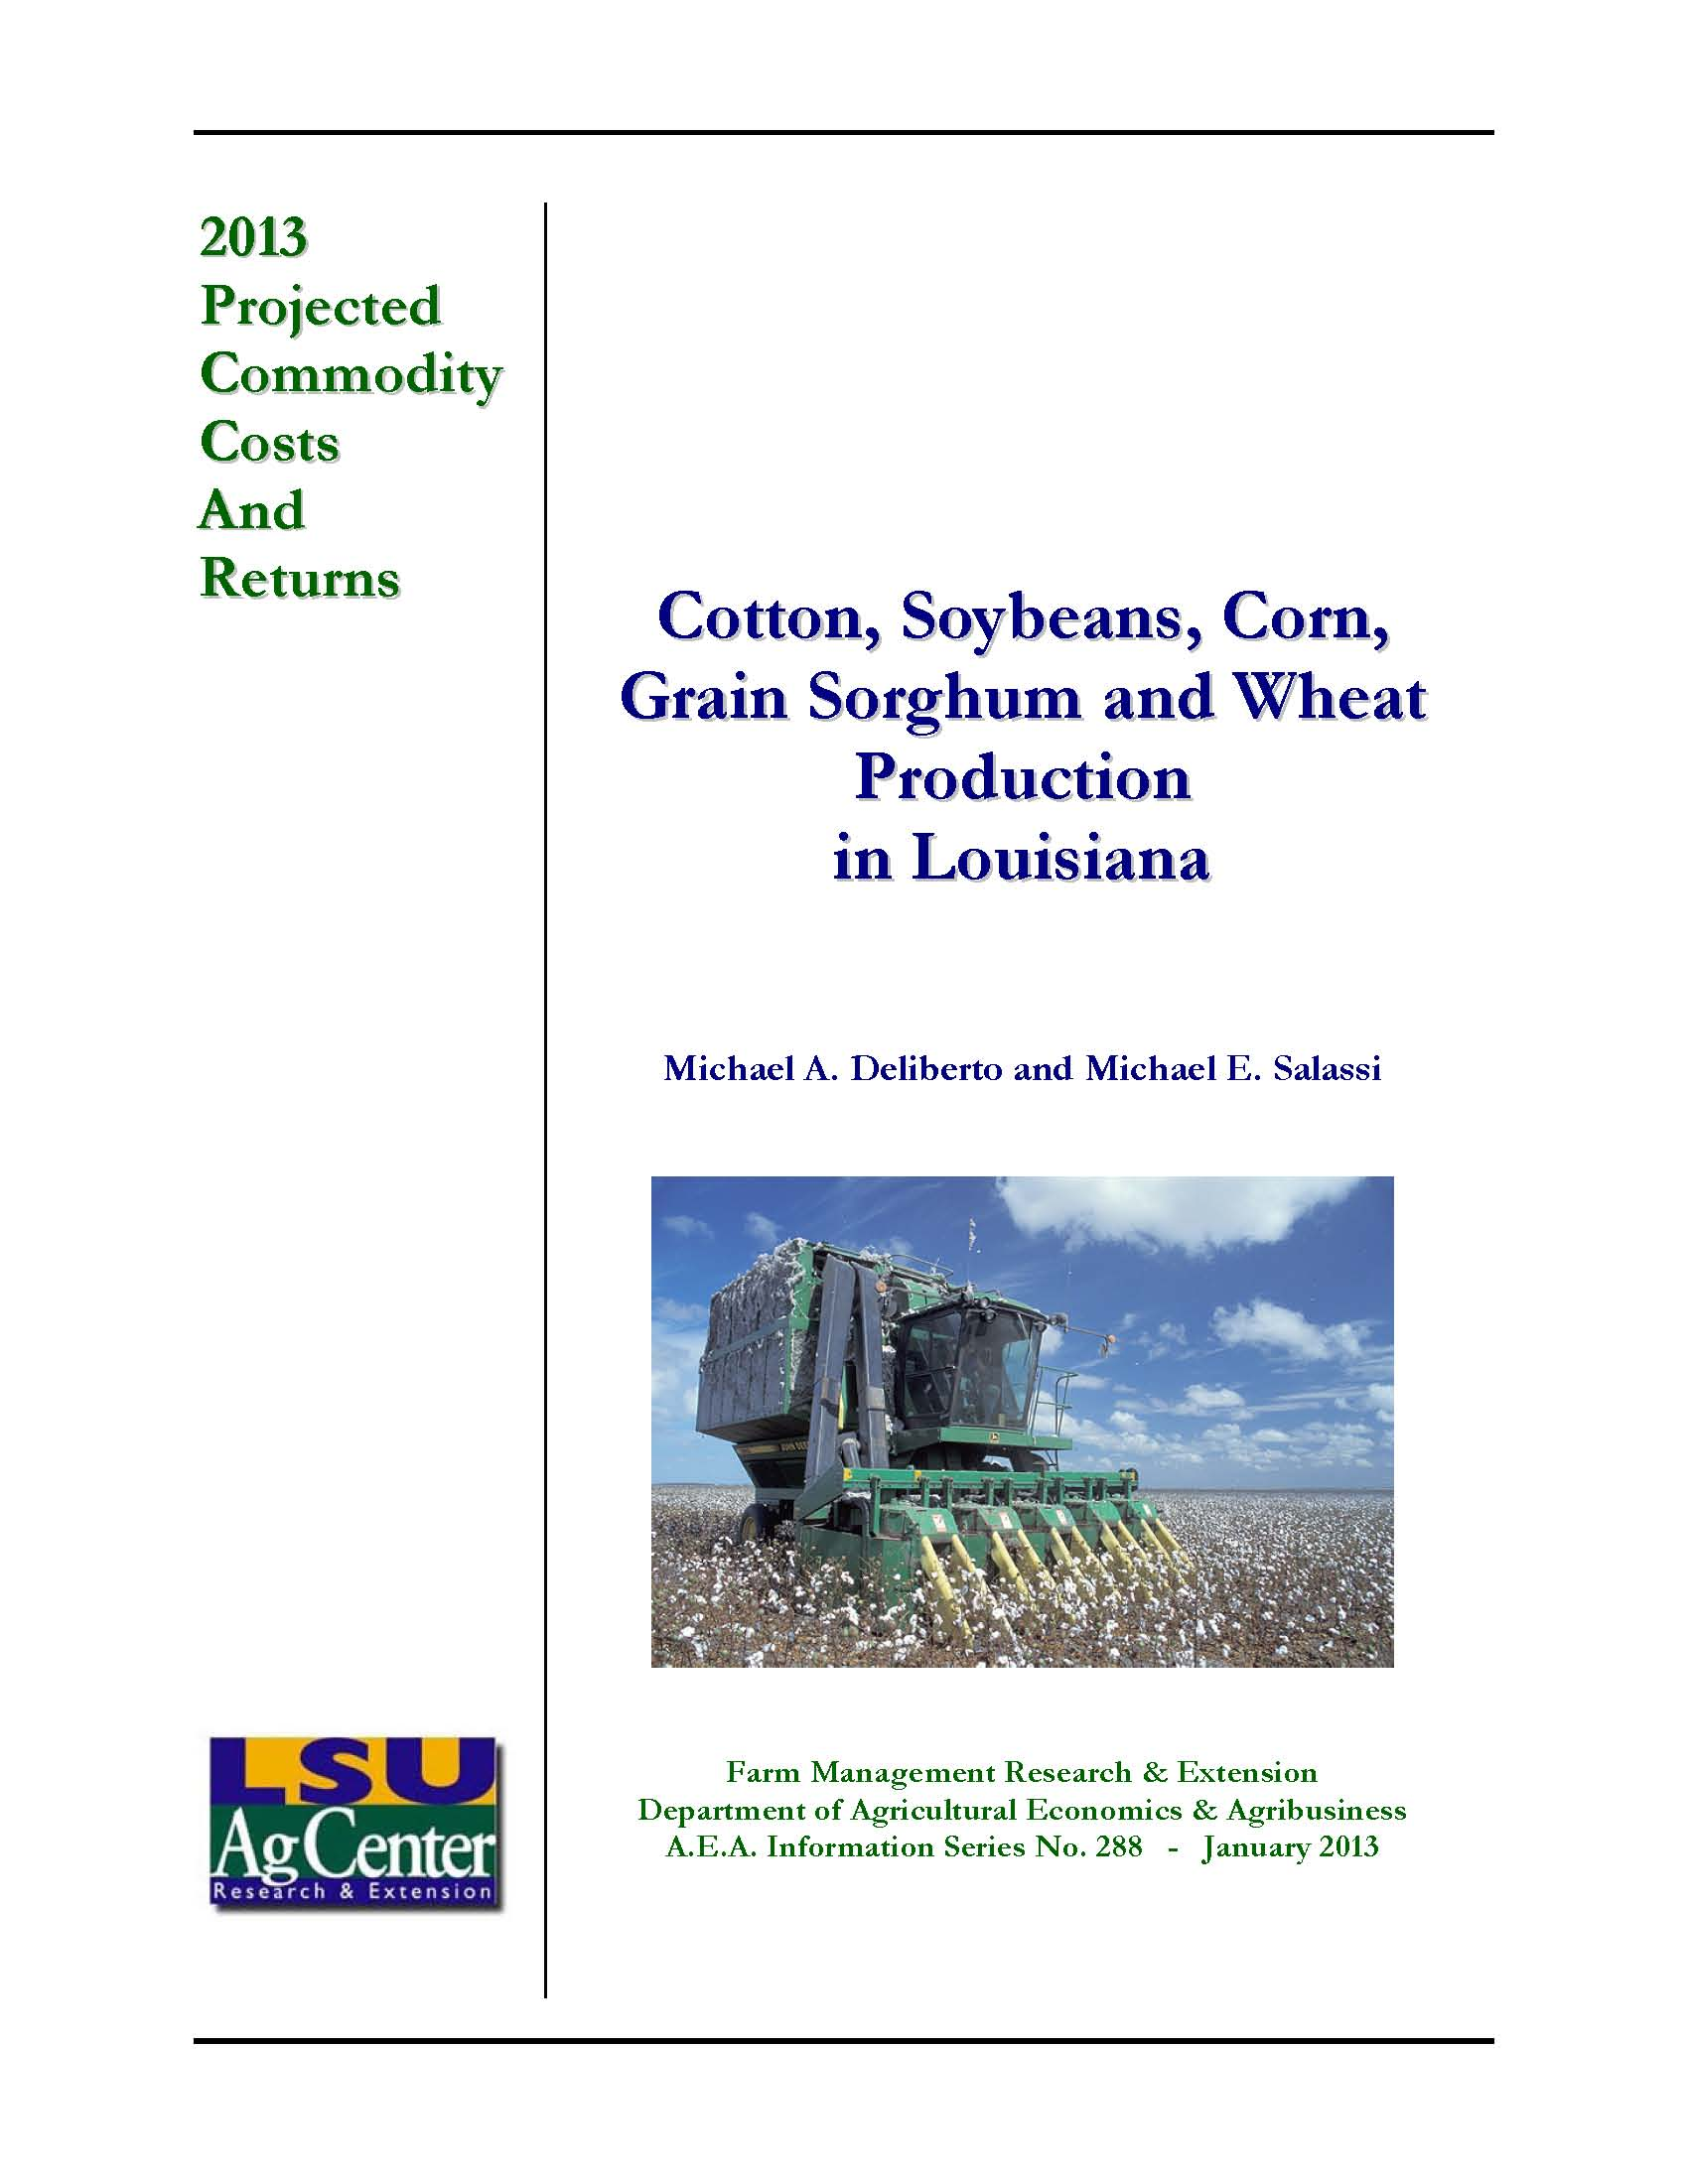 2013 Projected Cotton Corn Soybean and Wheat Production Costs